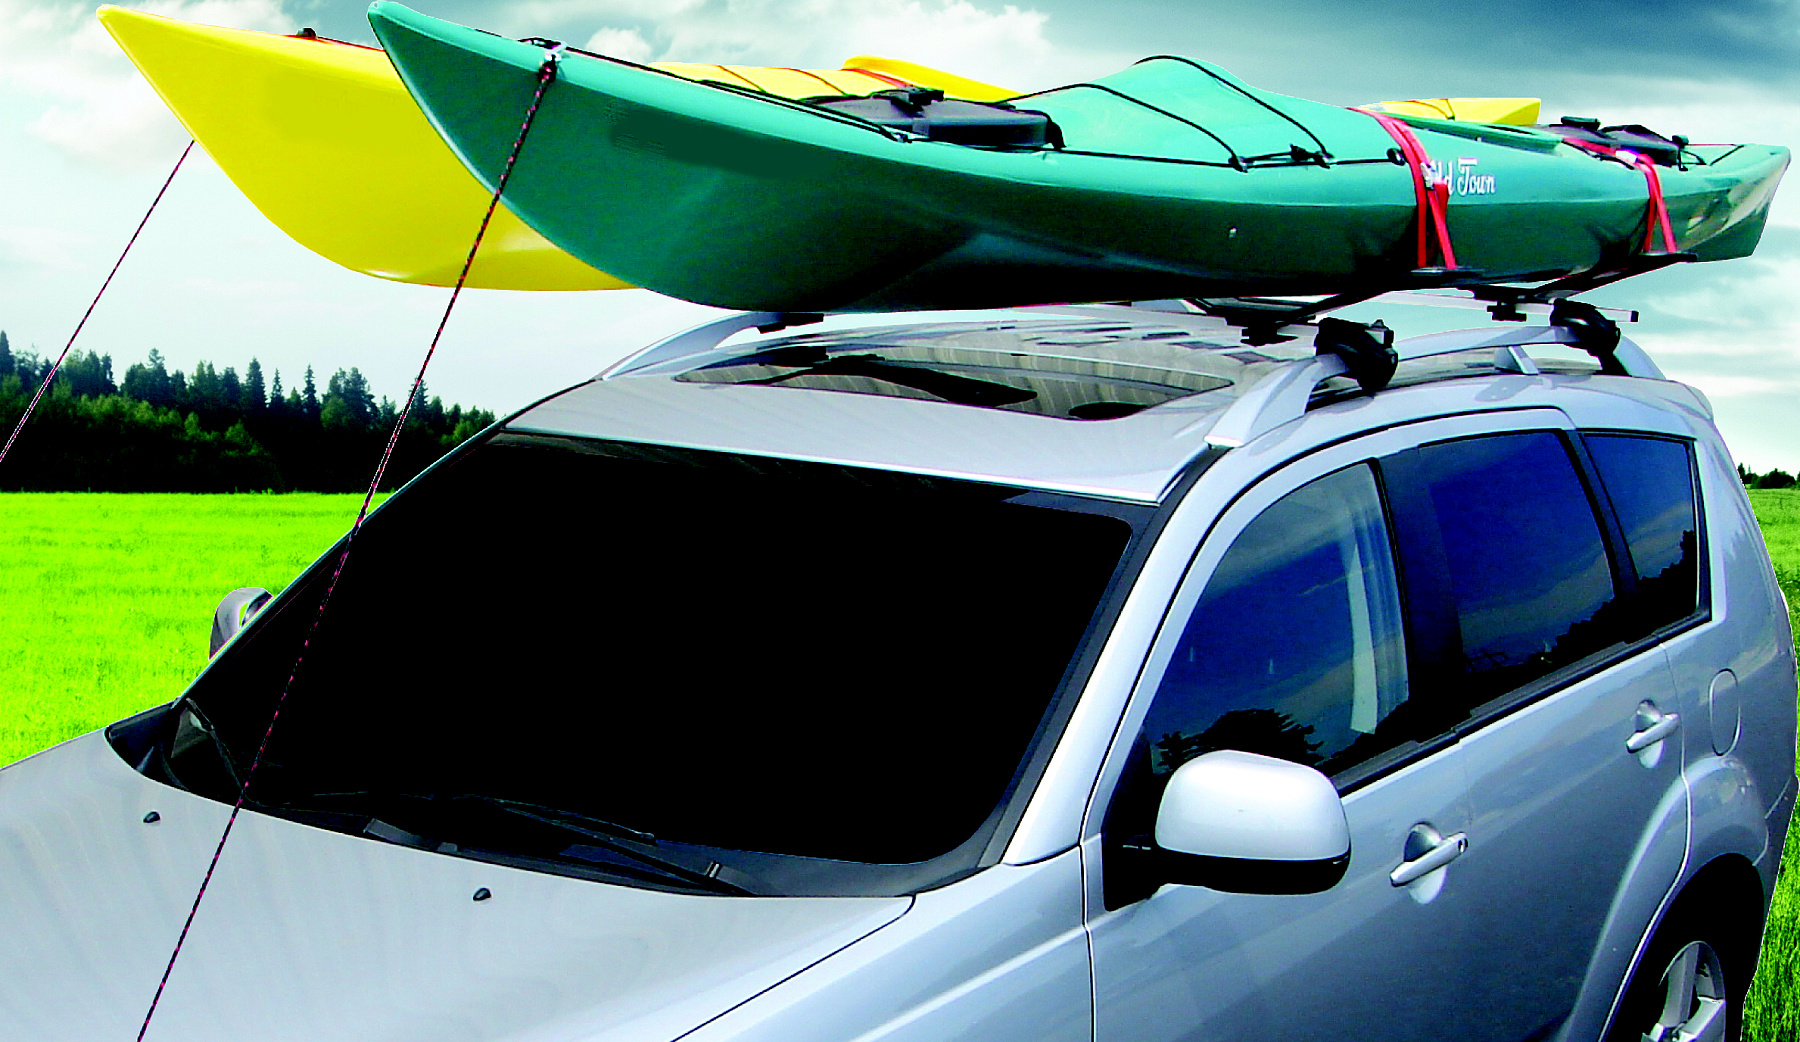 Malone Seawing MPG107 with Kayaks 2.jpg